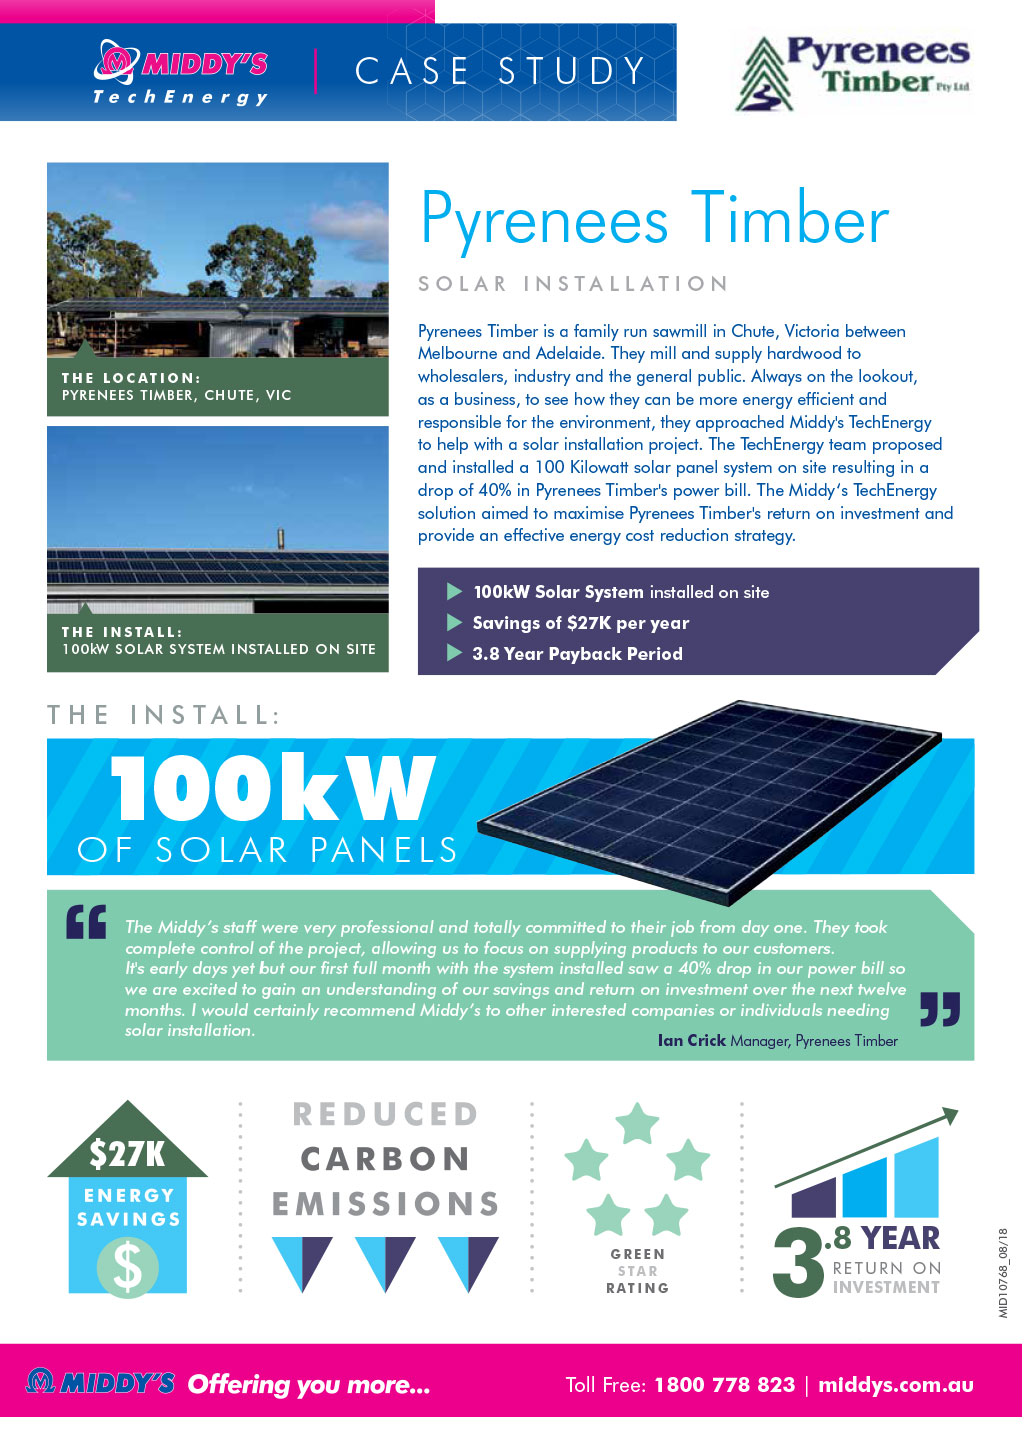 Pyrenees Timber Solar Installation Case Study